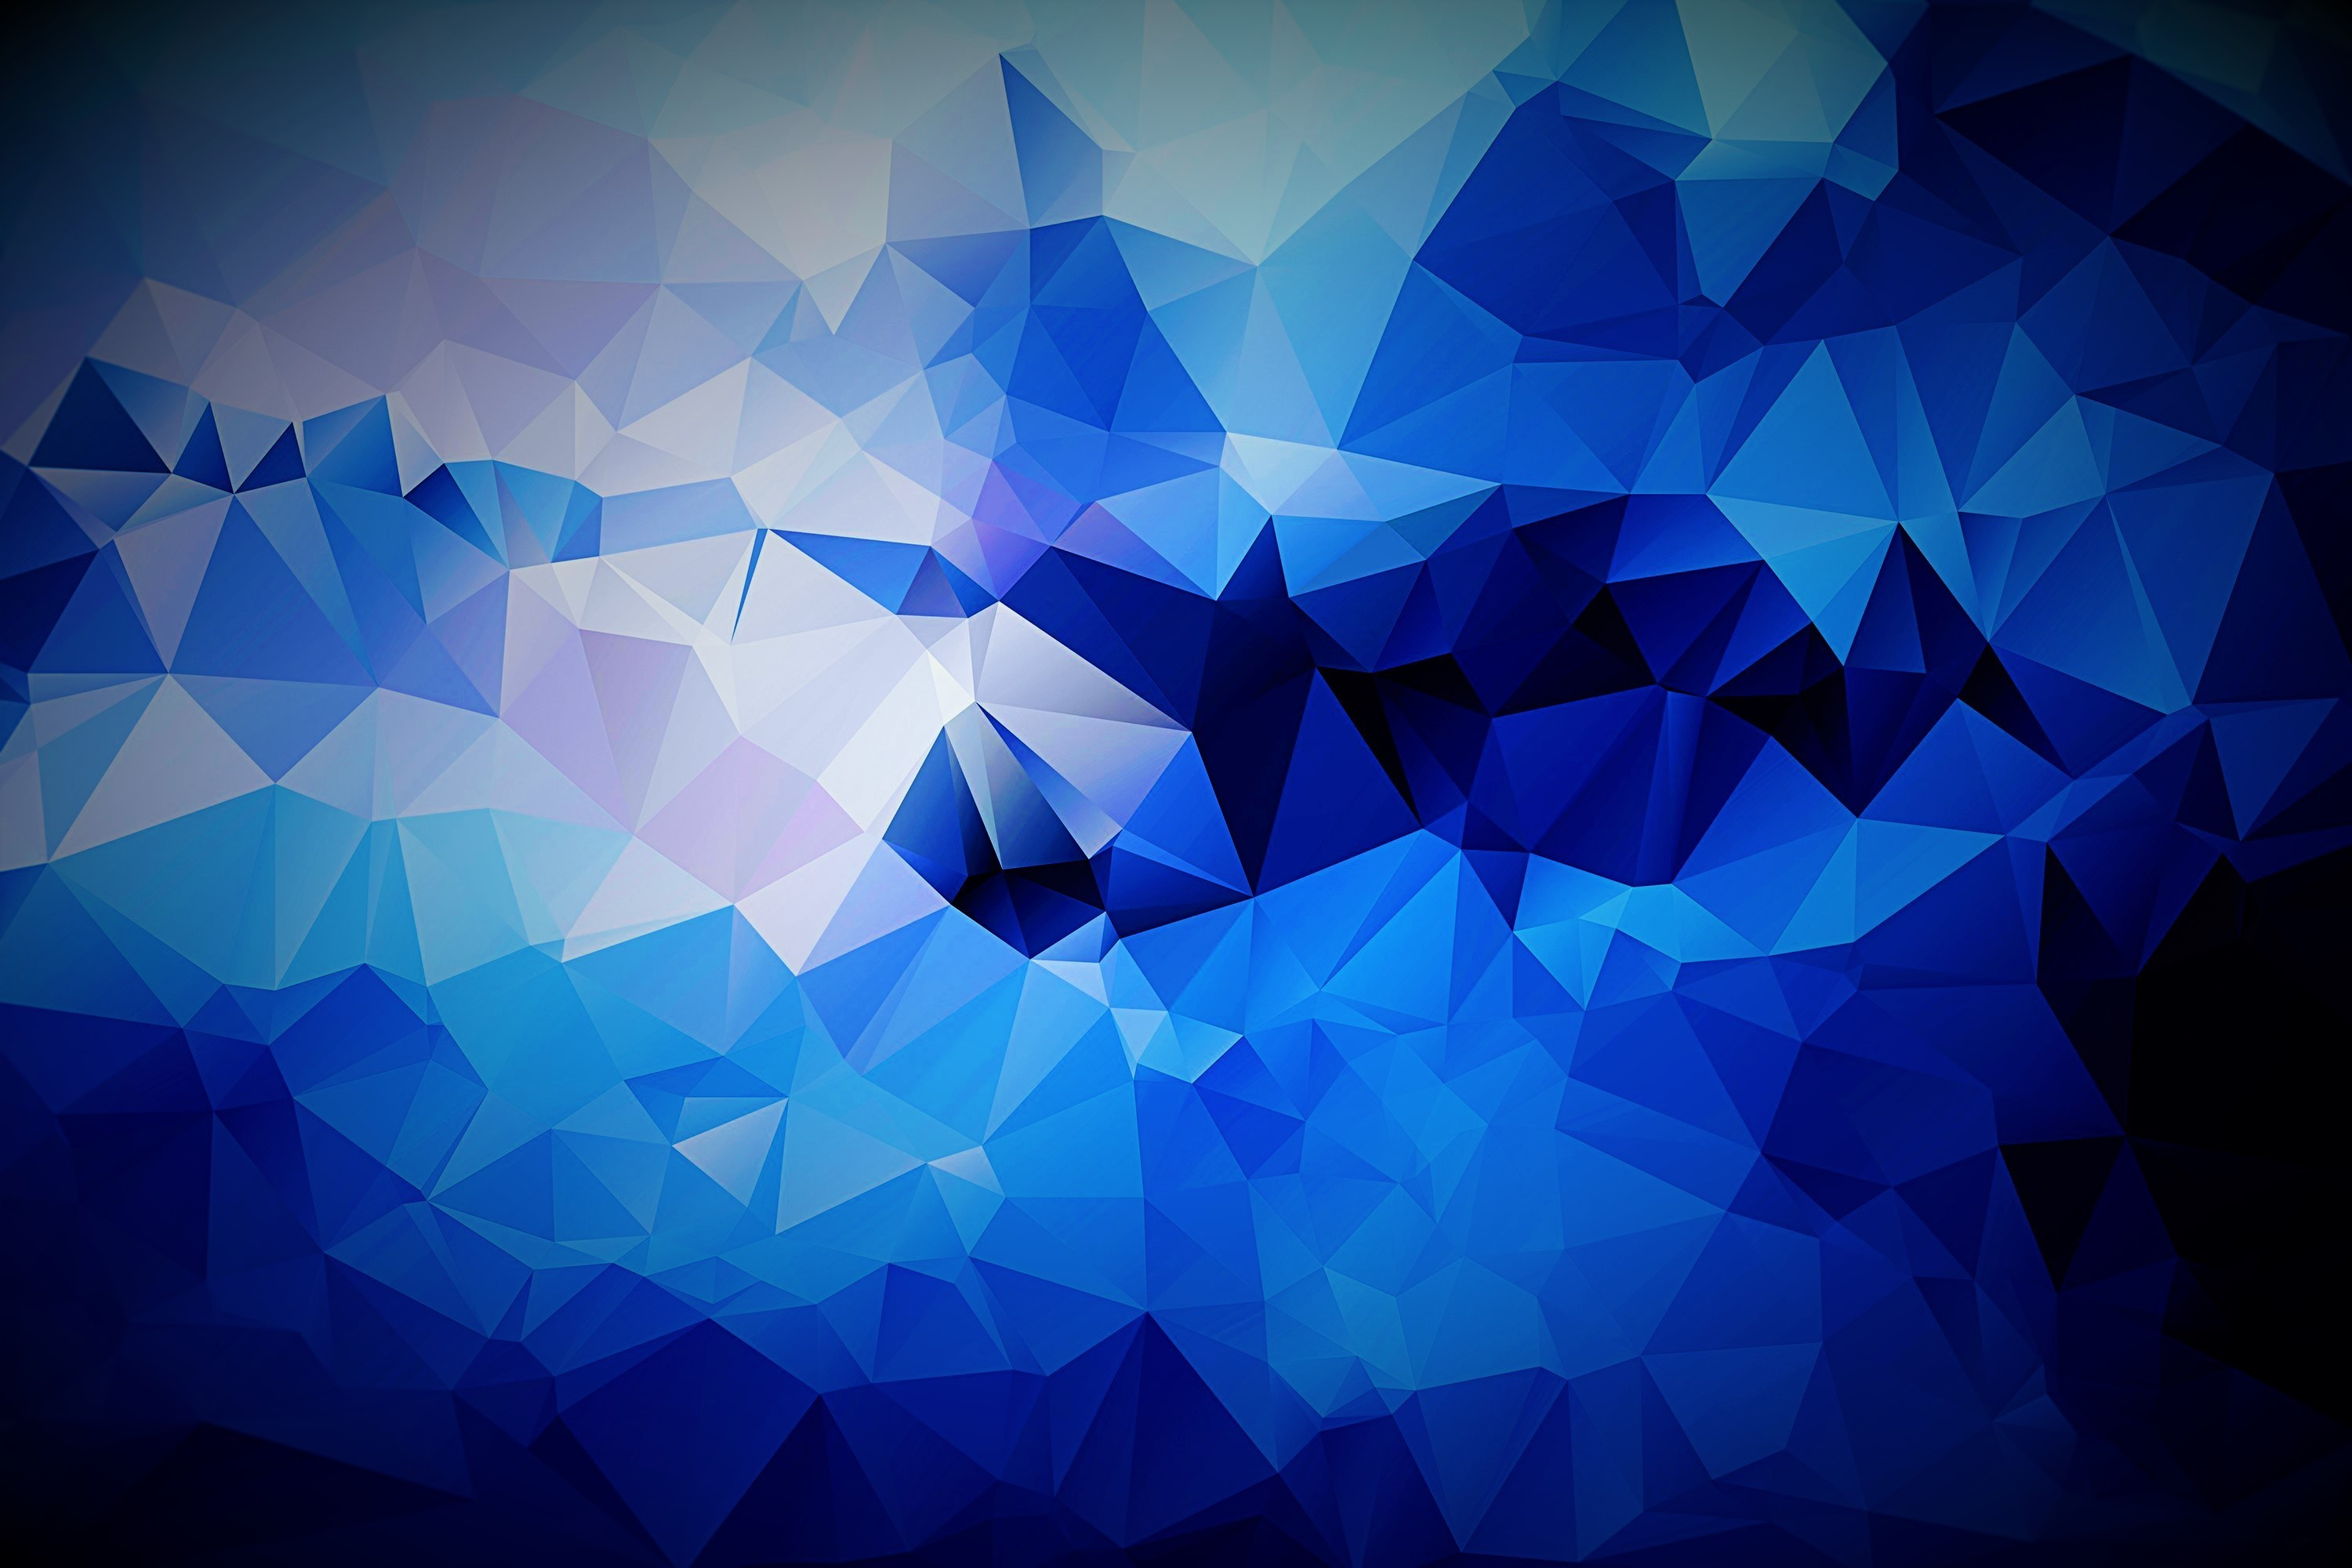 78+ blue abstract wallpapers on wallpaperplay